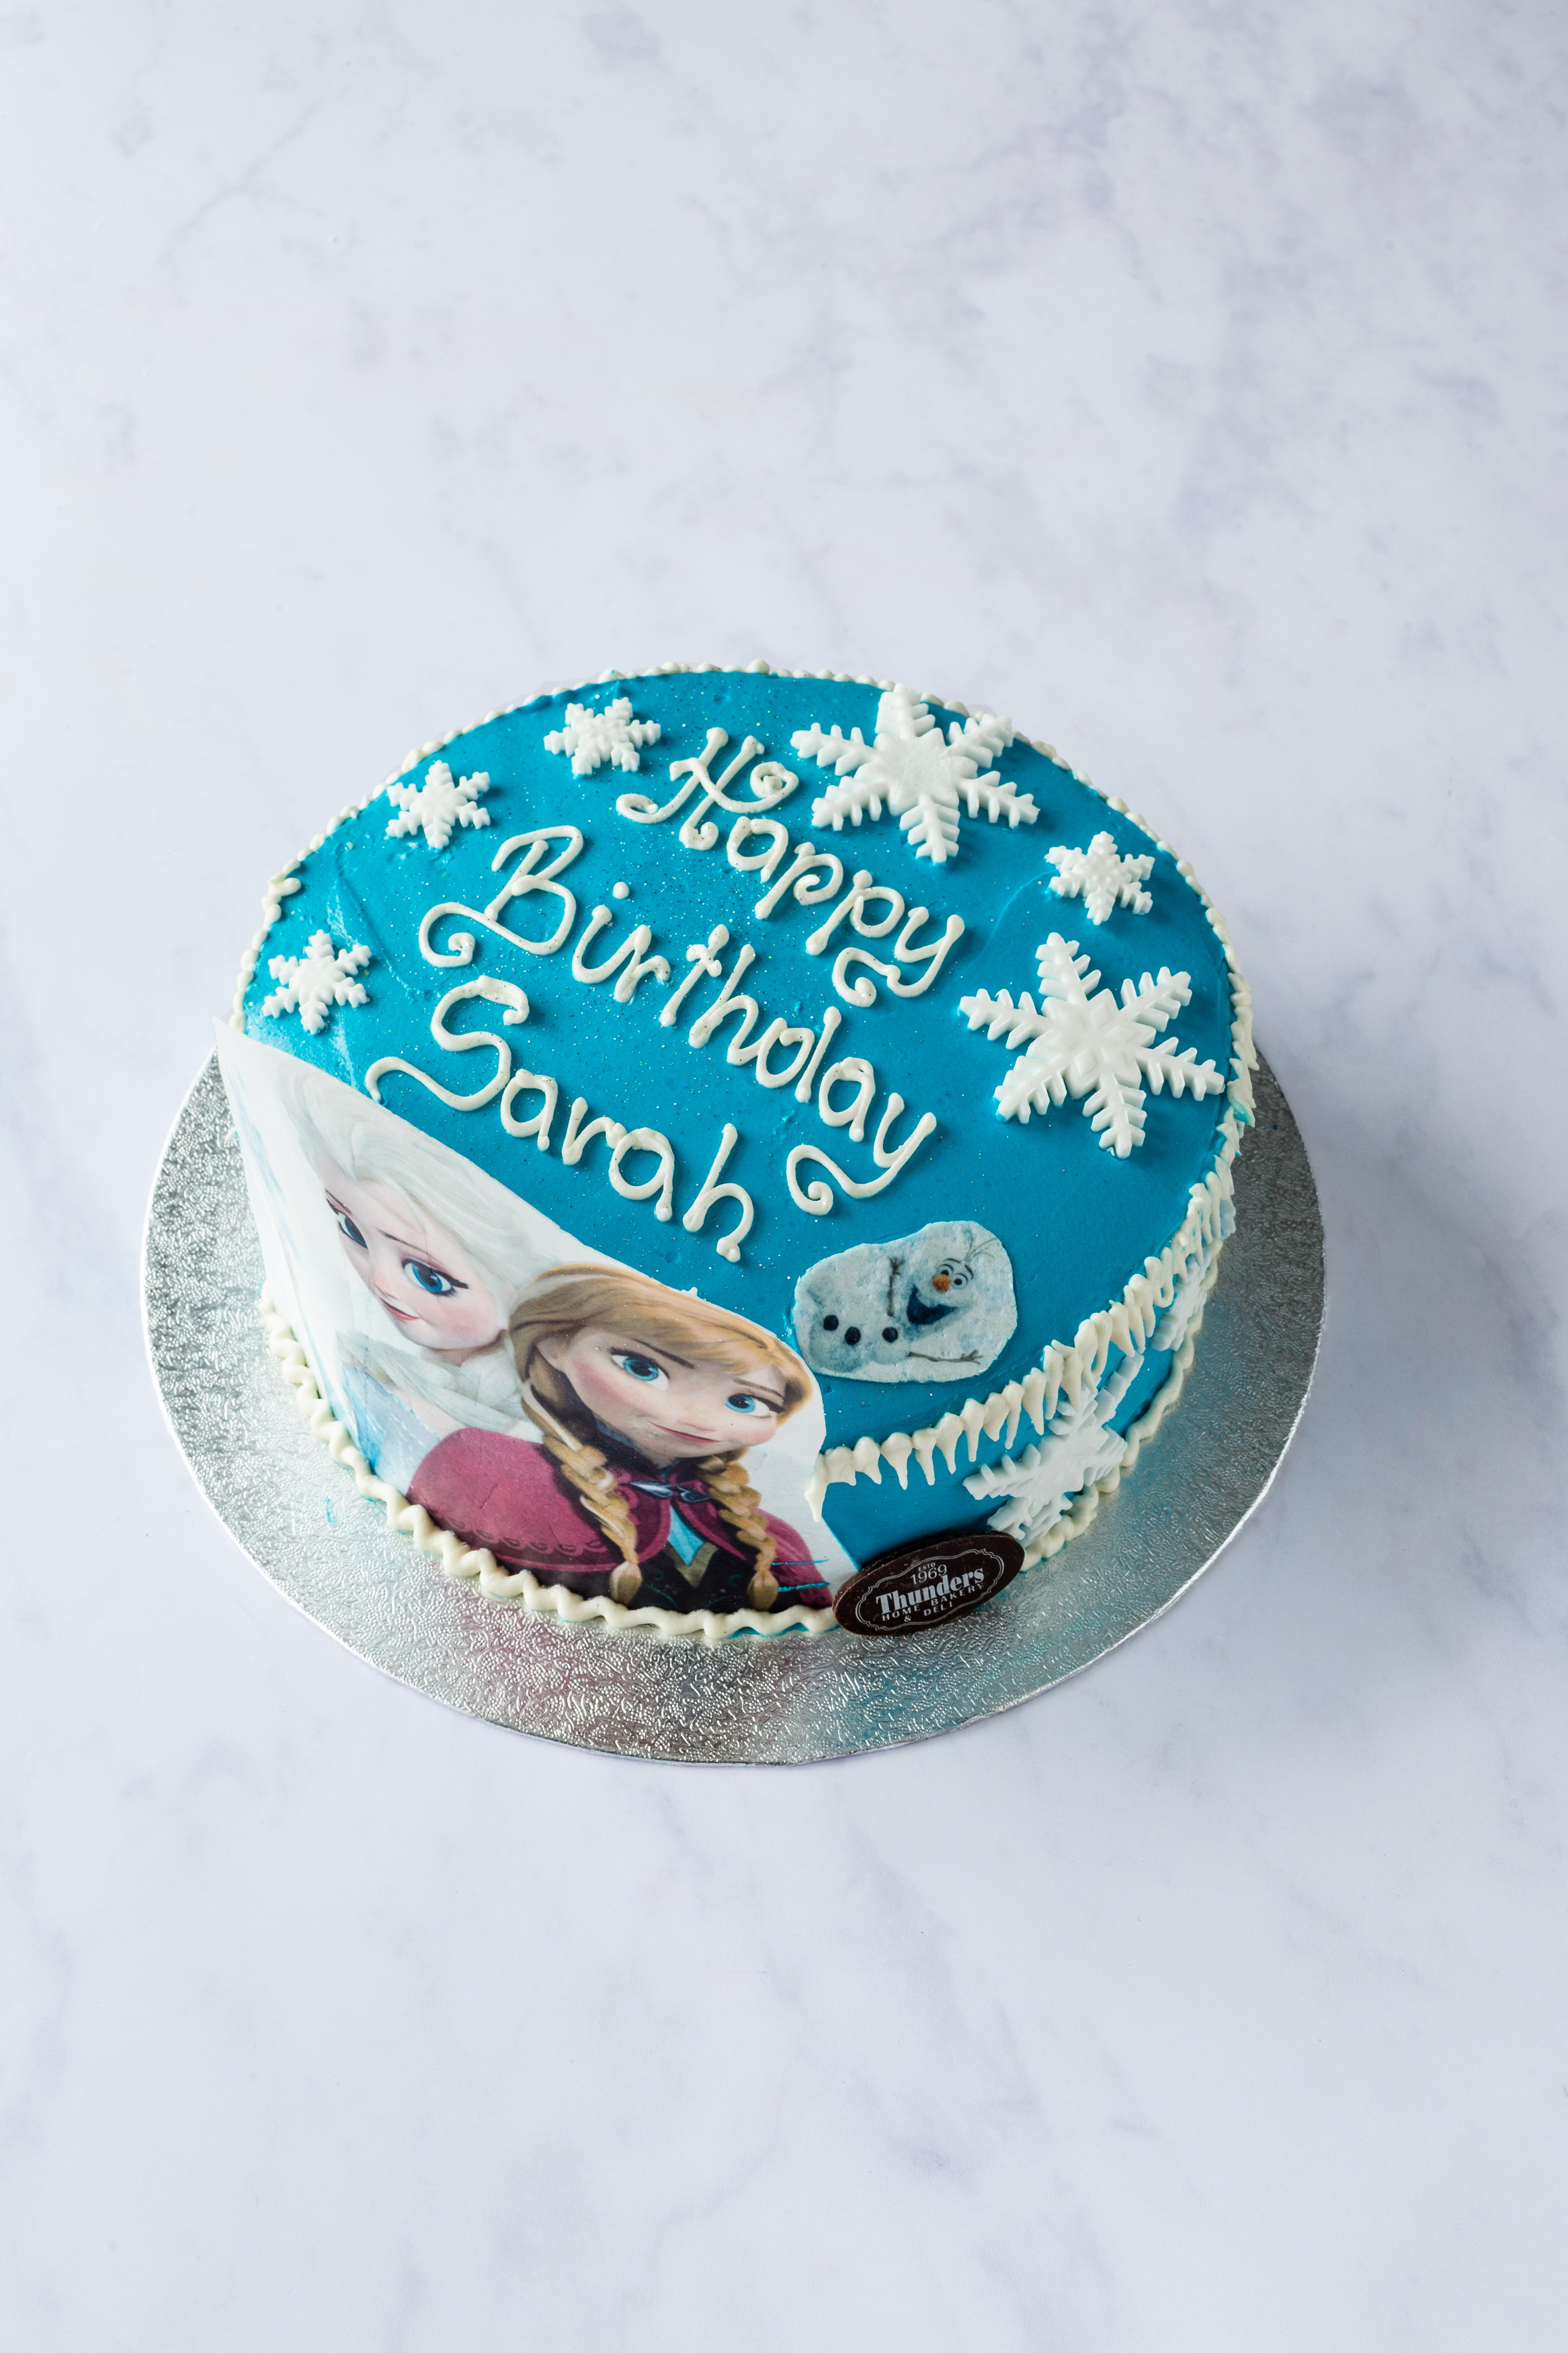 Thunders Novelty Ana Elsa Birthday Cake